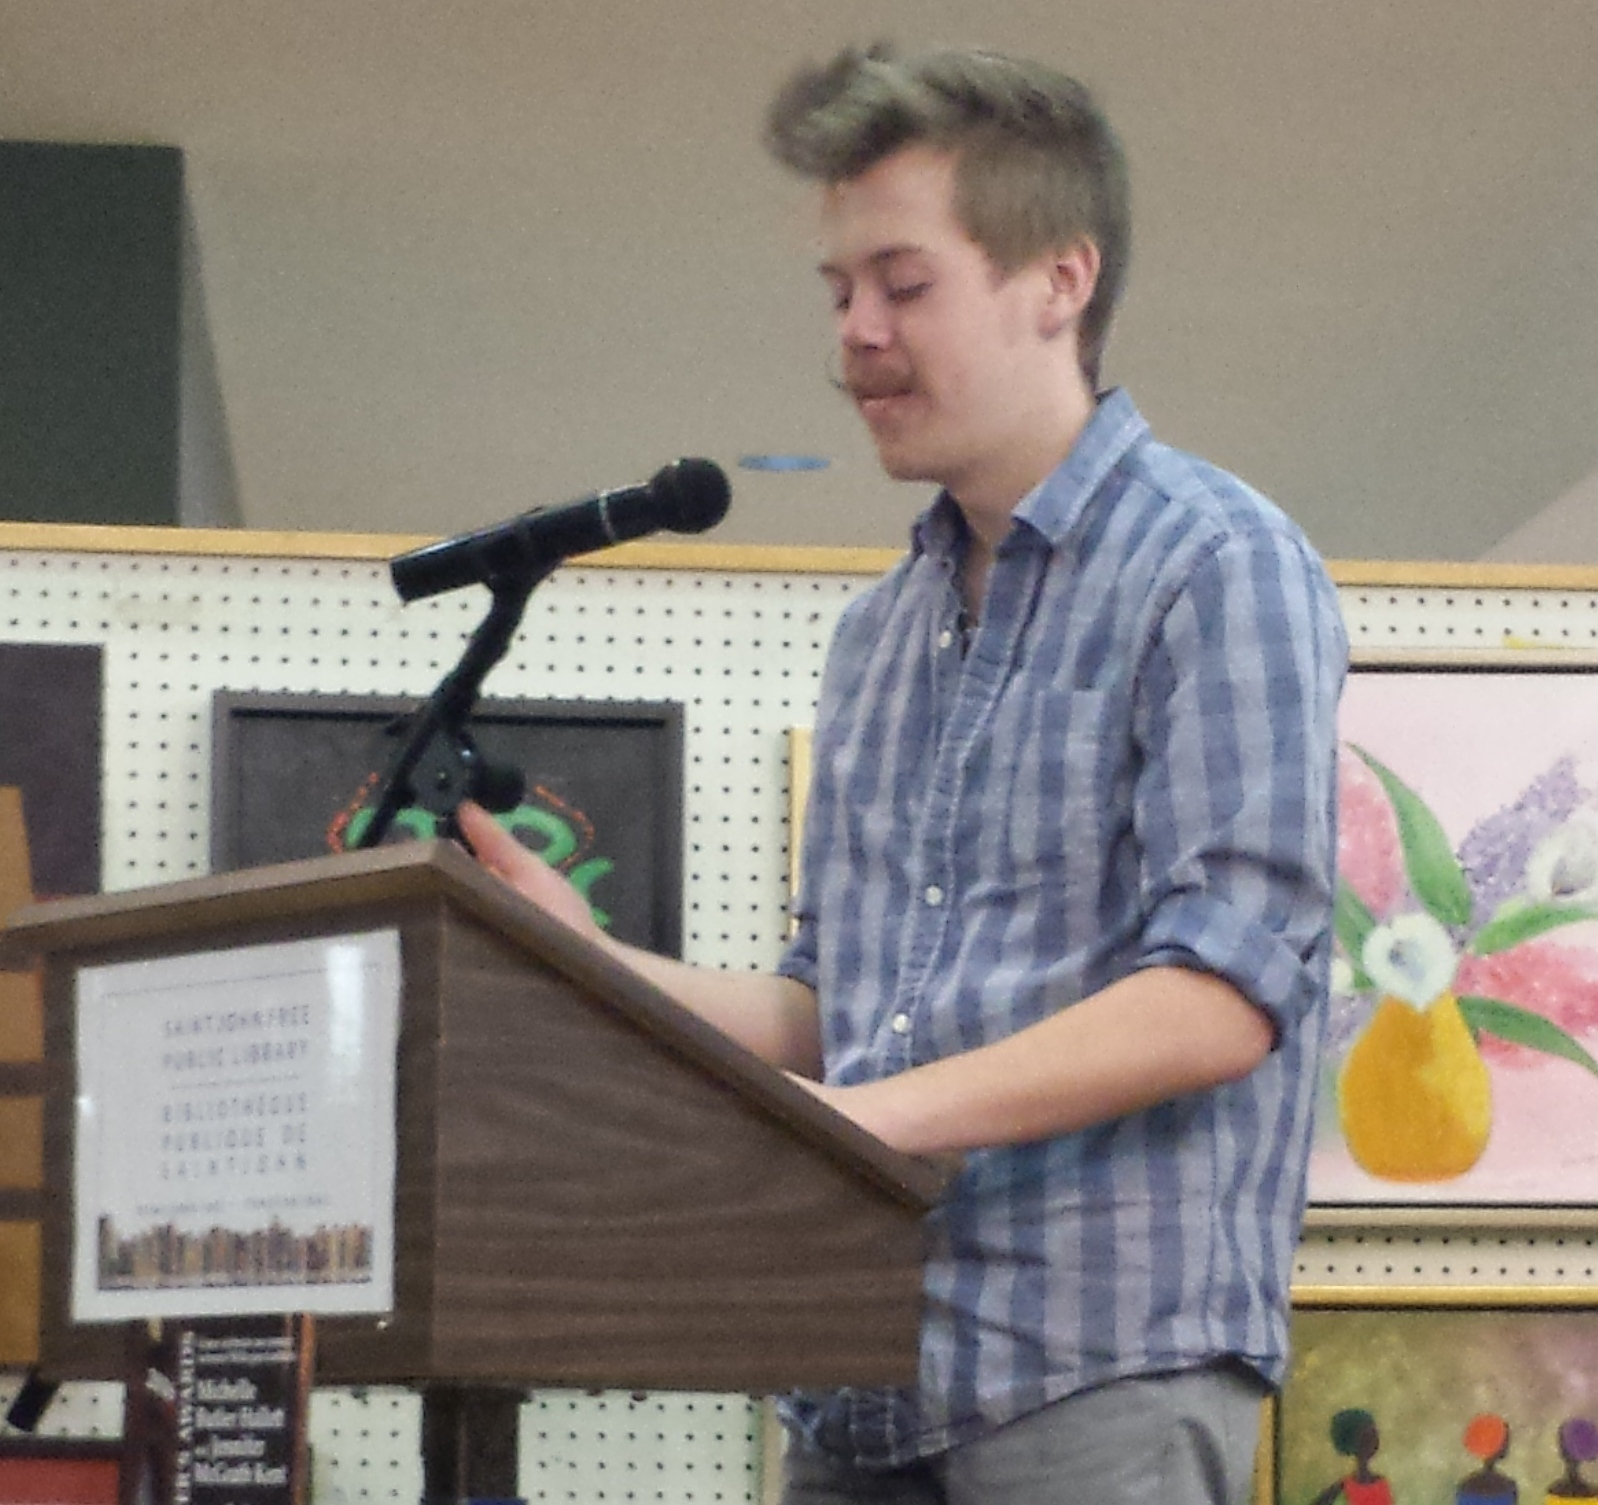 Spencer Folkins reading from his submission. Emerging Writers Awards 2015